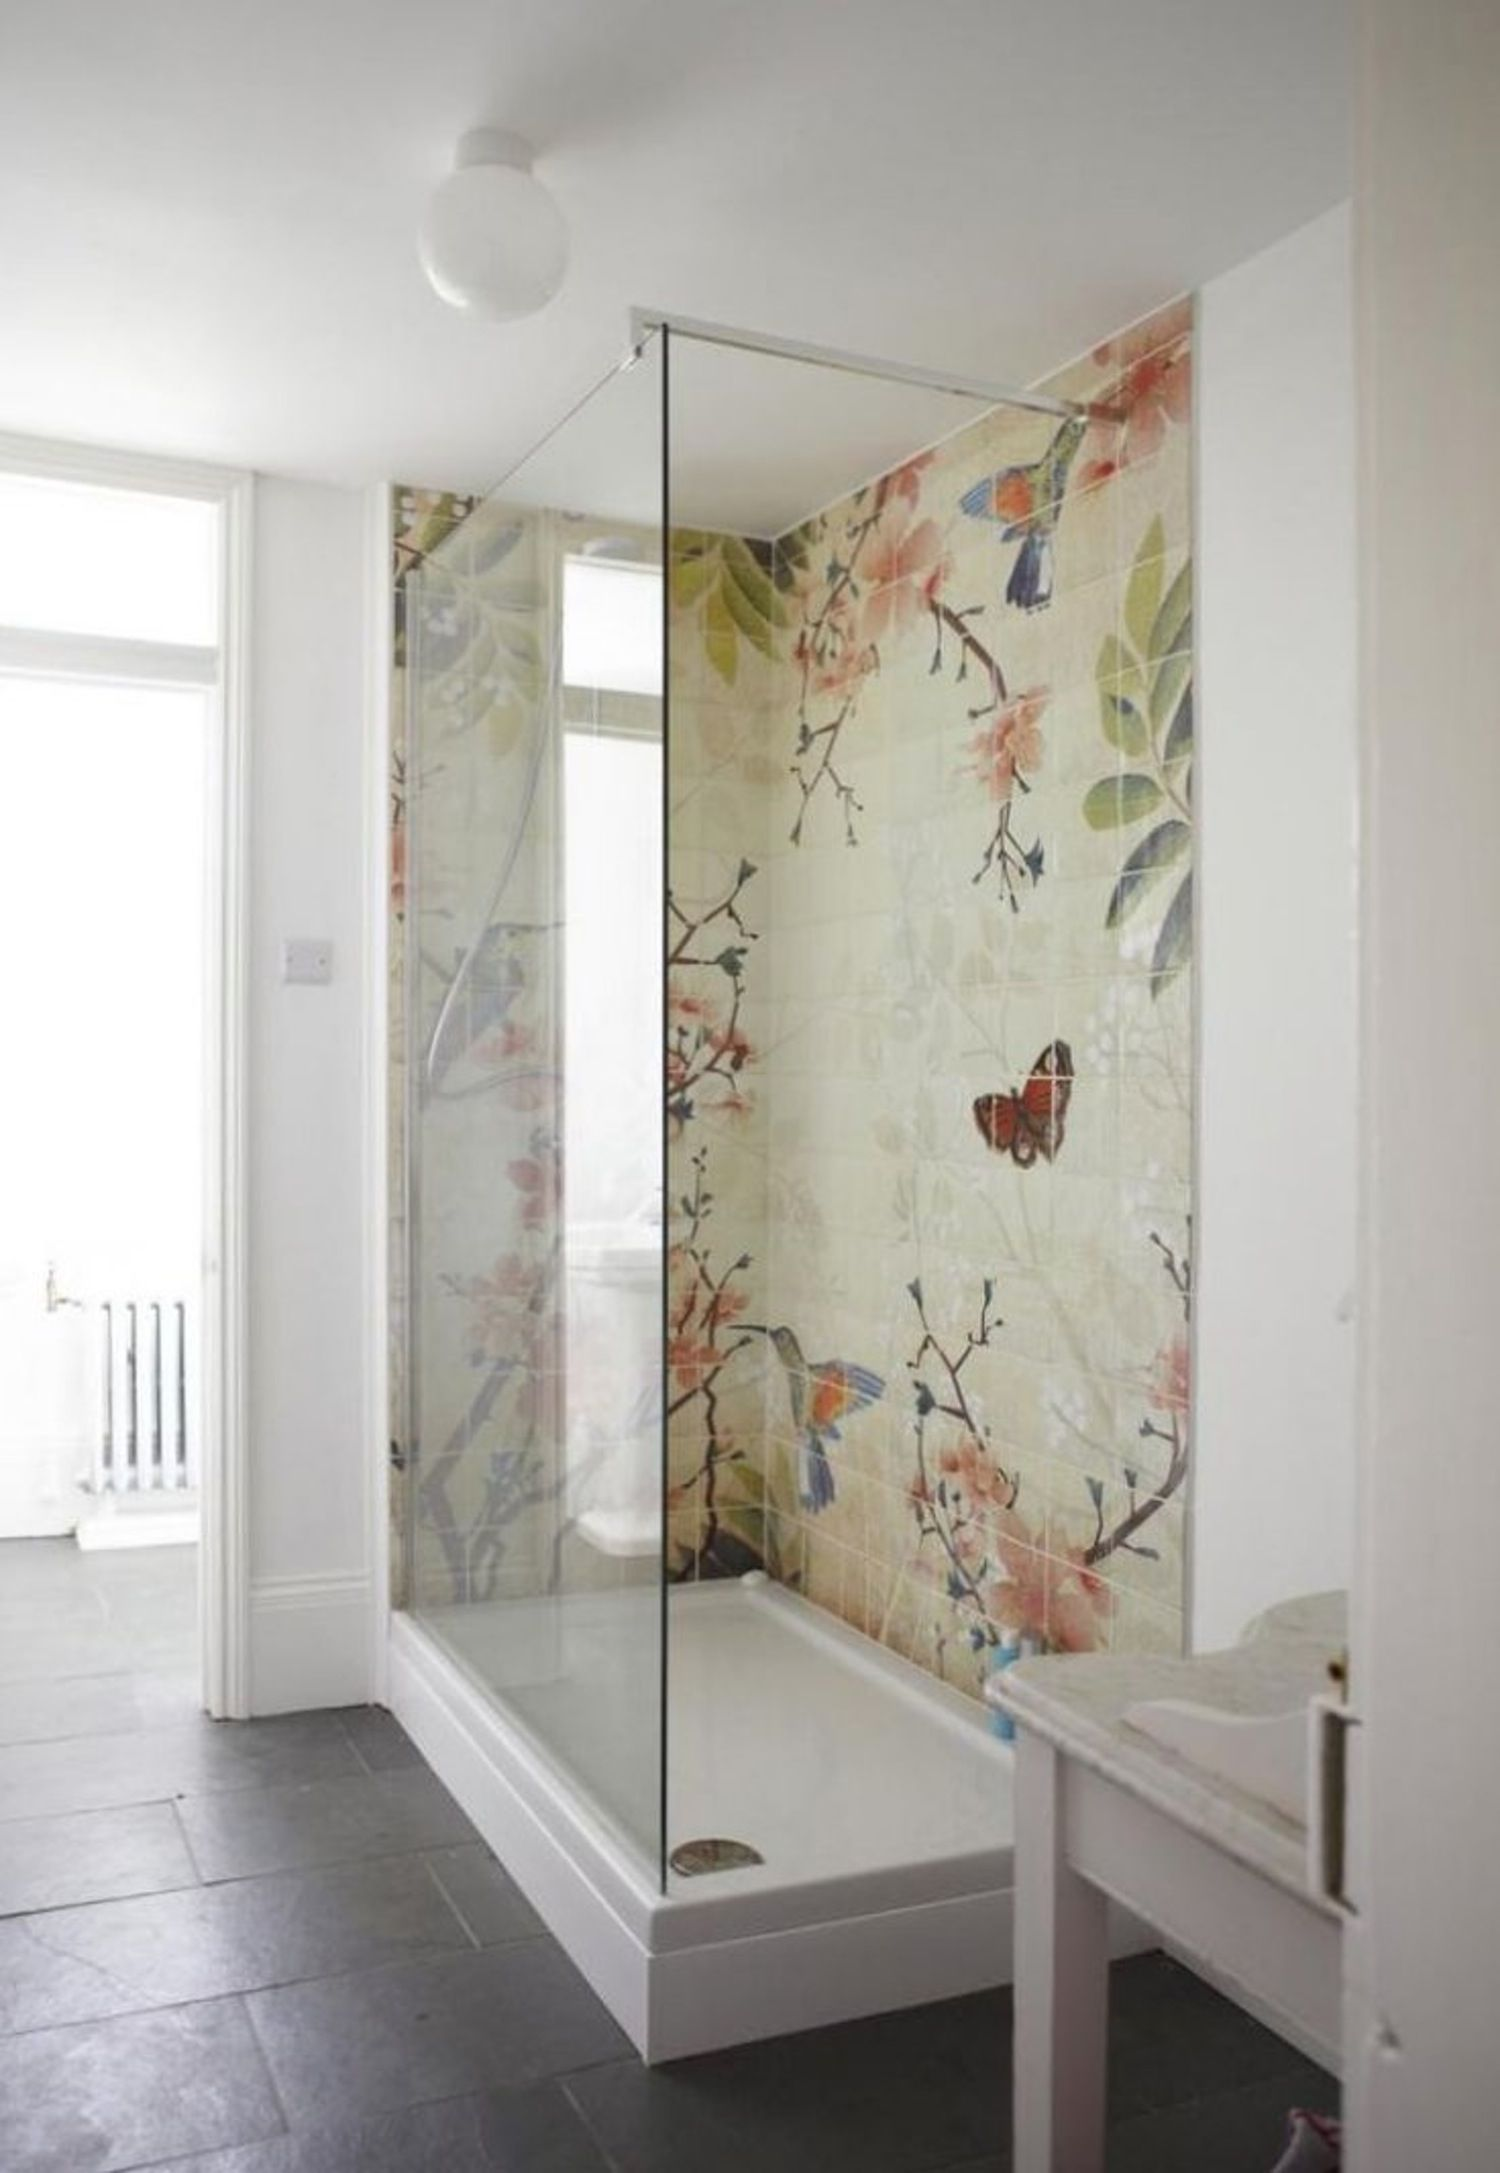 3 Zimmer Küche Bad Besetzung 10 Unusual Beautiful Details To Steal For Your New Bathroom